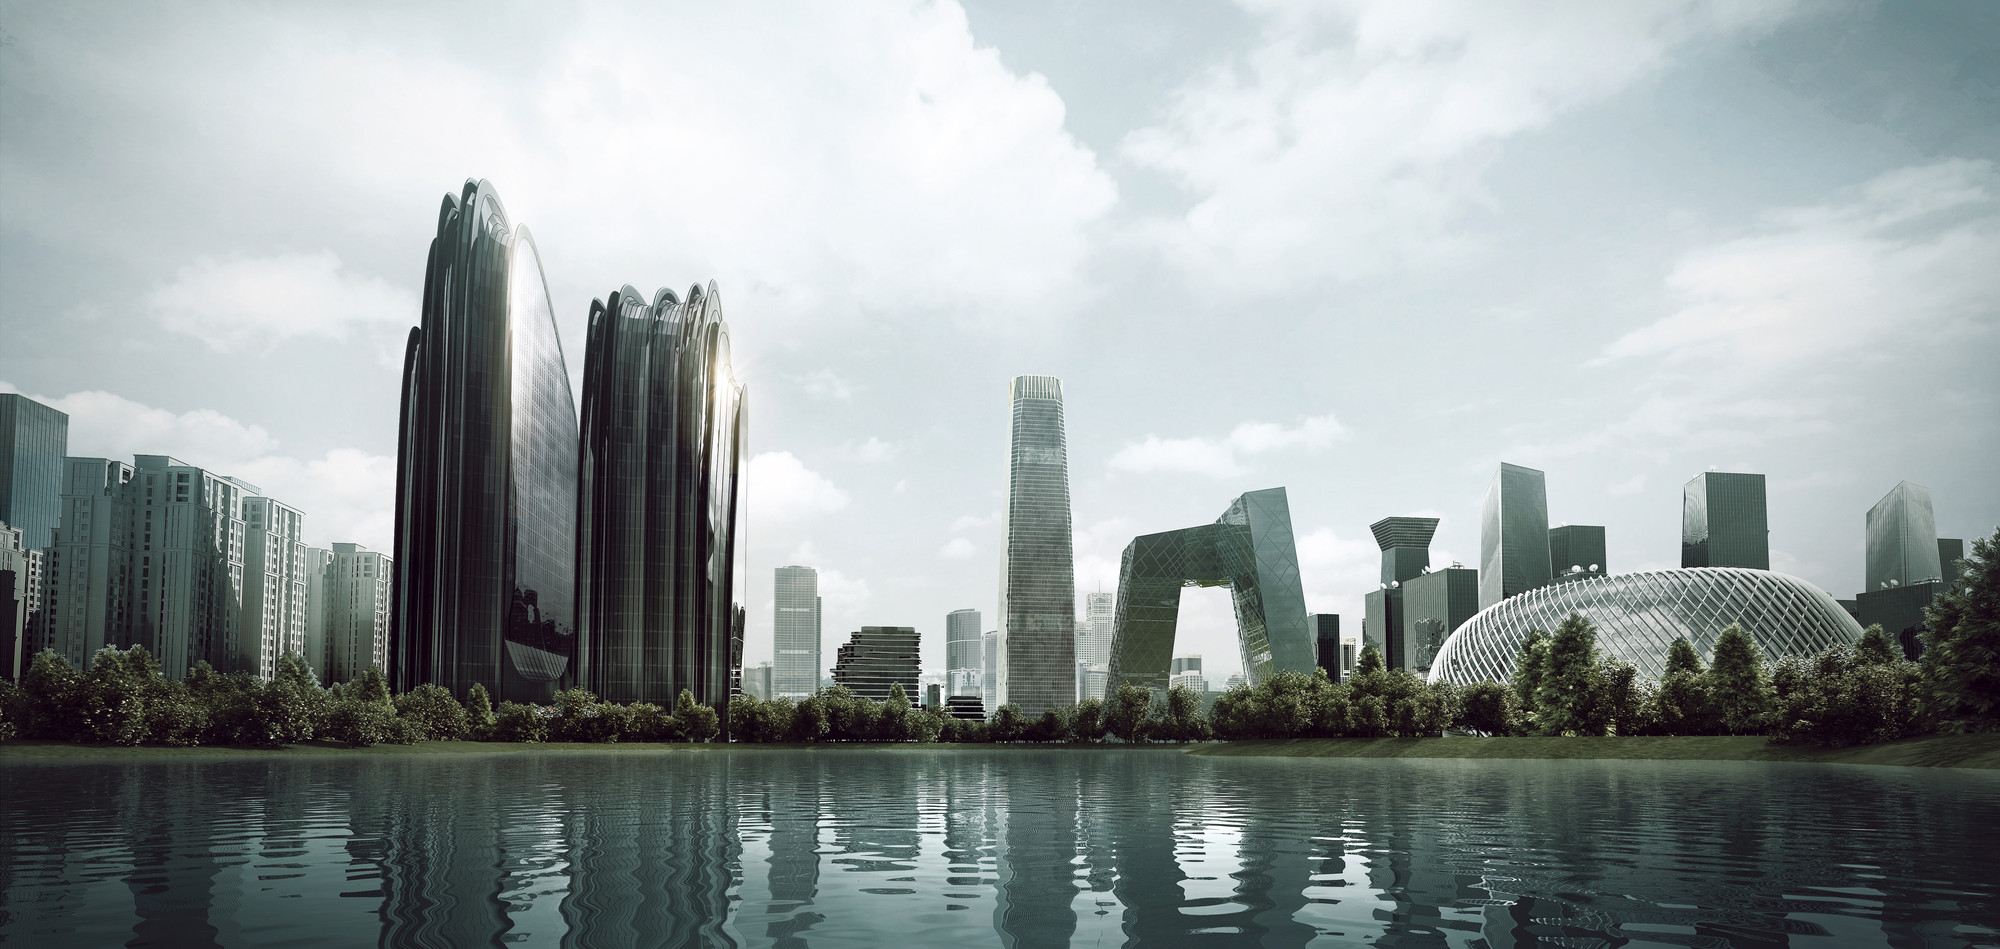 taking the gmat in beijing article